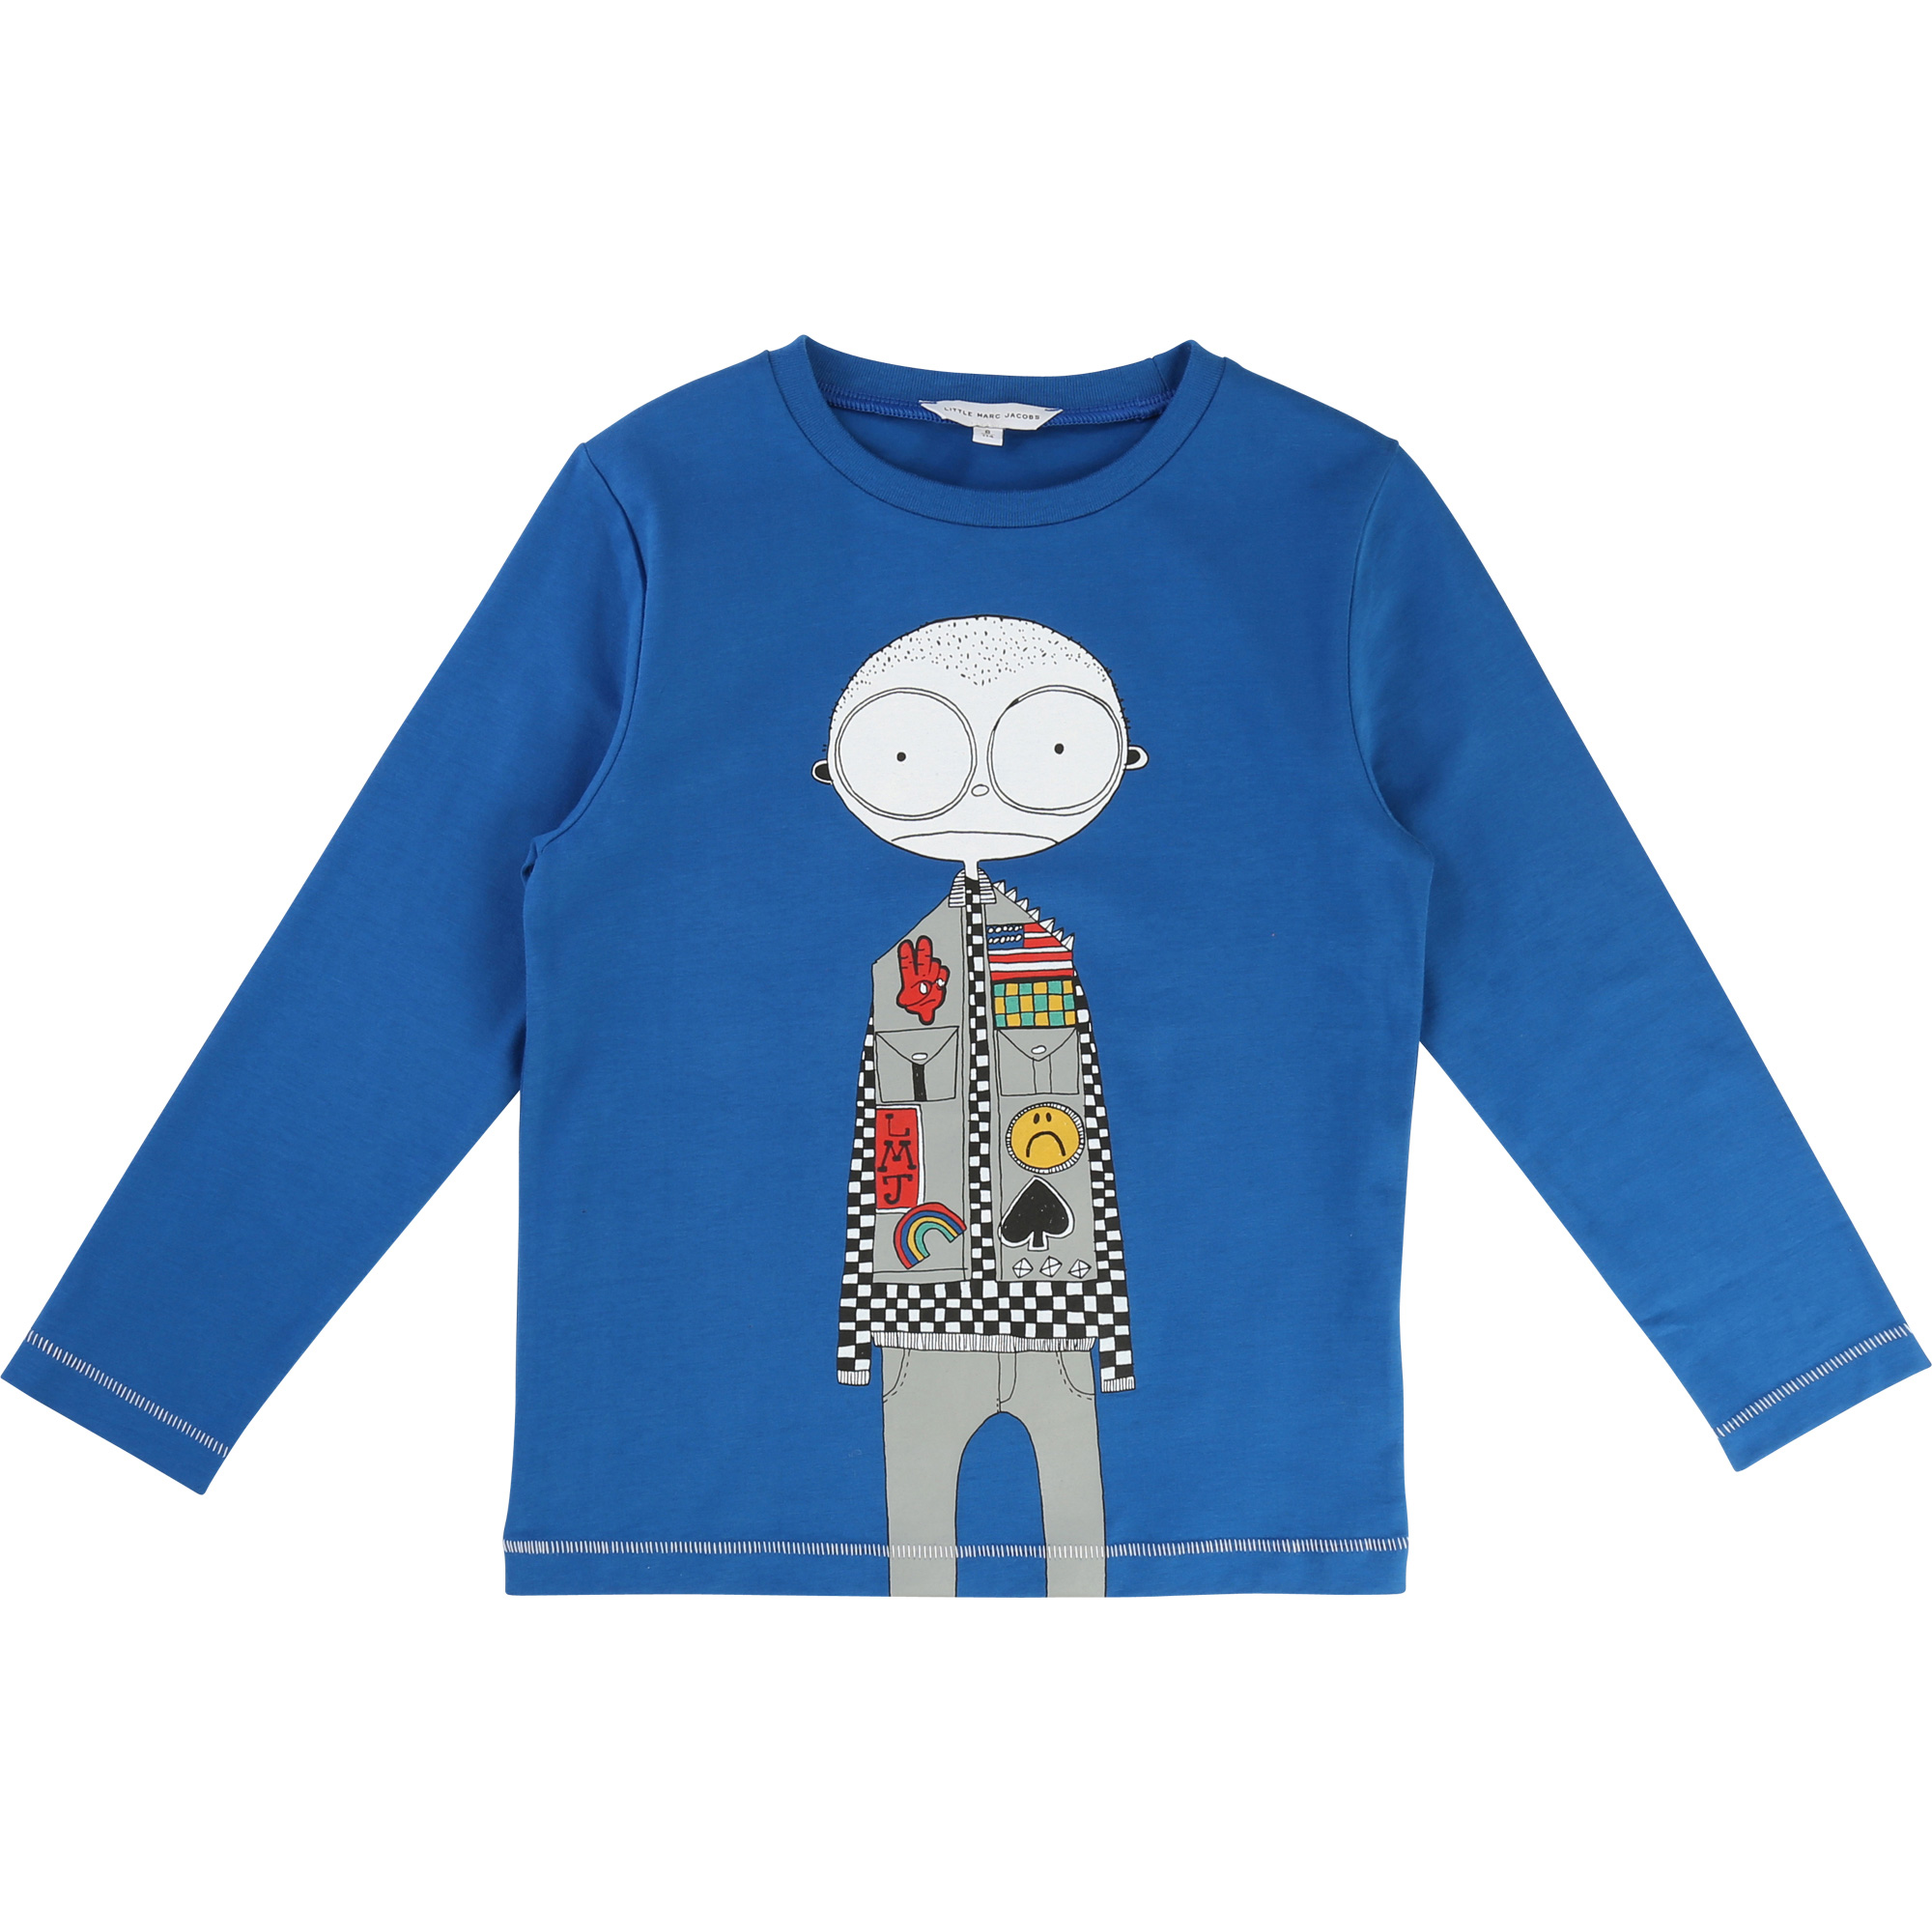 CAMISETA M.L. LITTLE MARC JACOBS para NIÑO